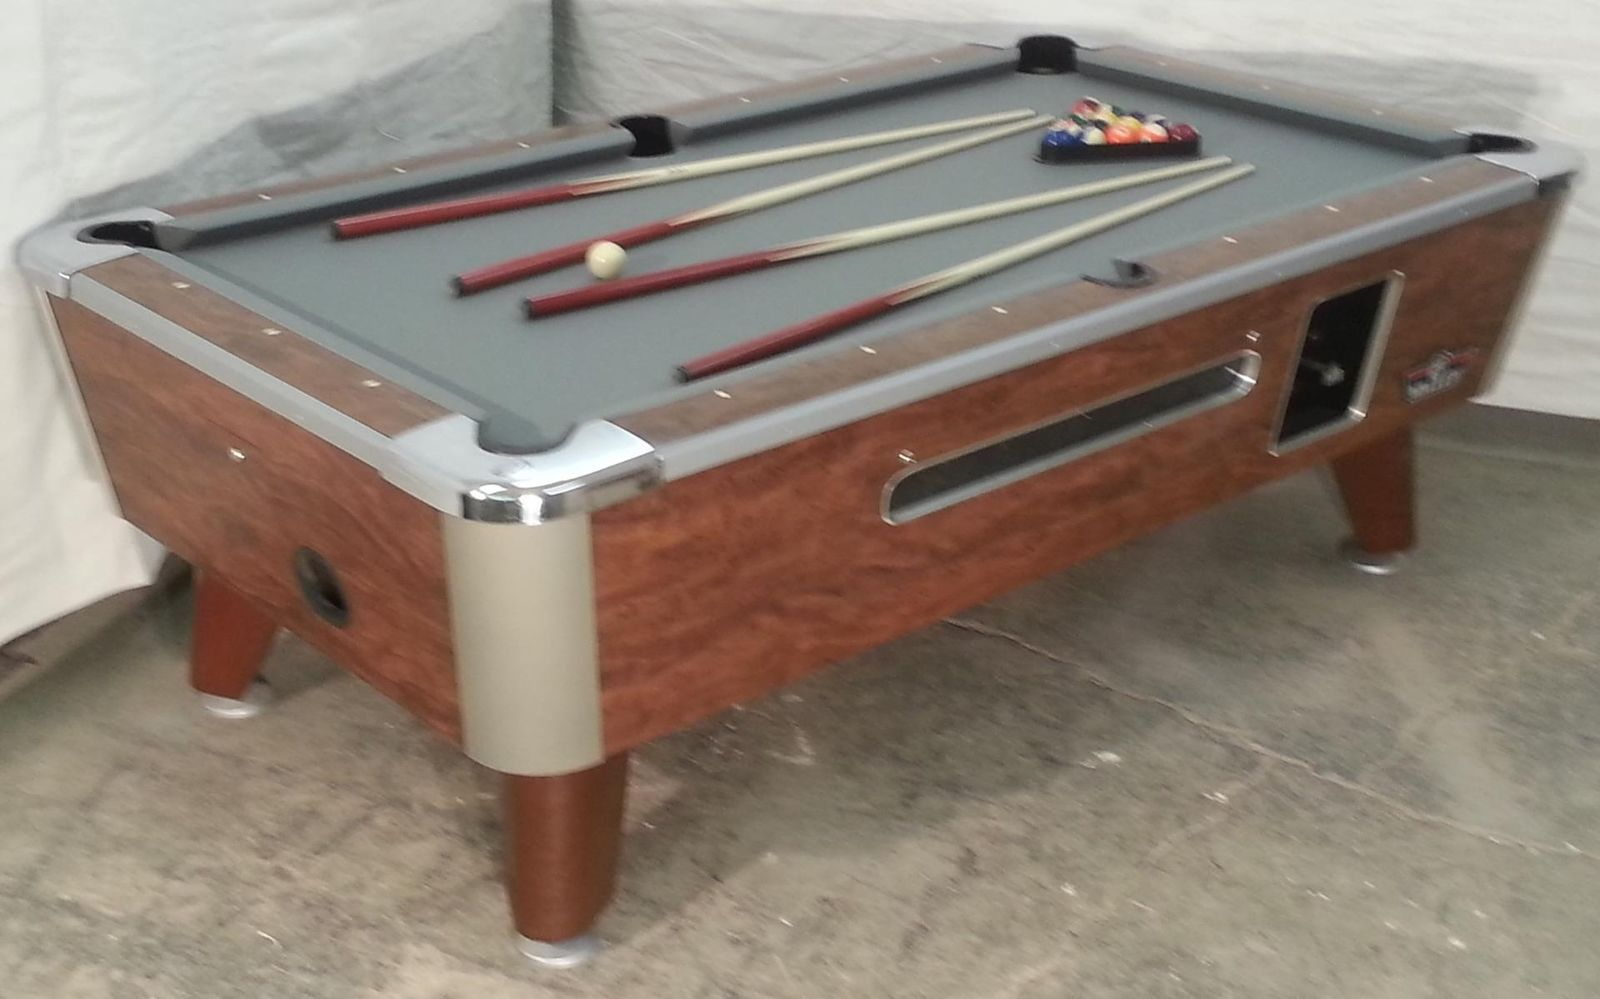 Valley Commercial Coinop Bar Size Pool Table Model Zd Refurb - Valley pool table models